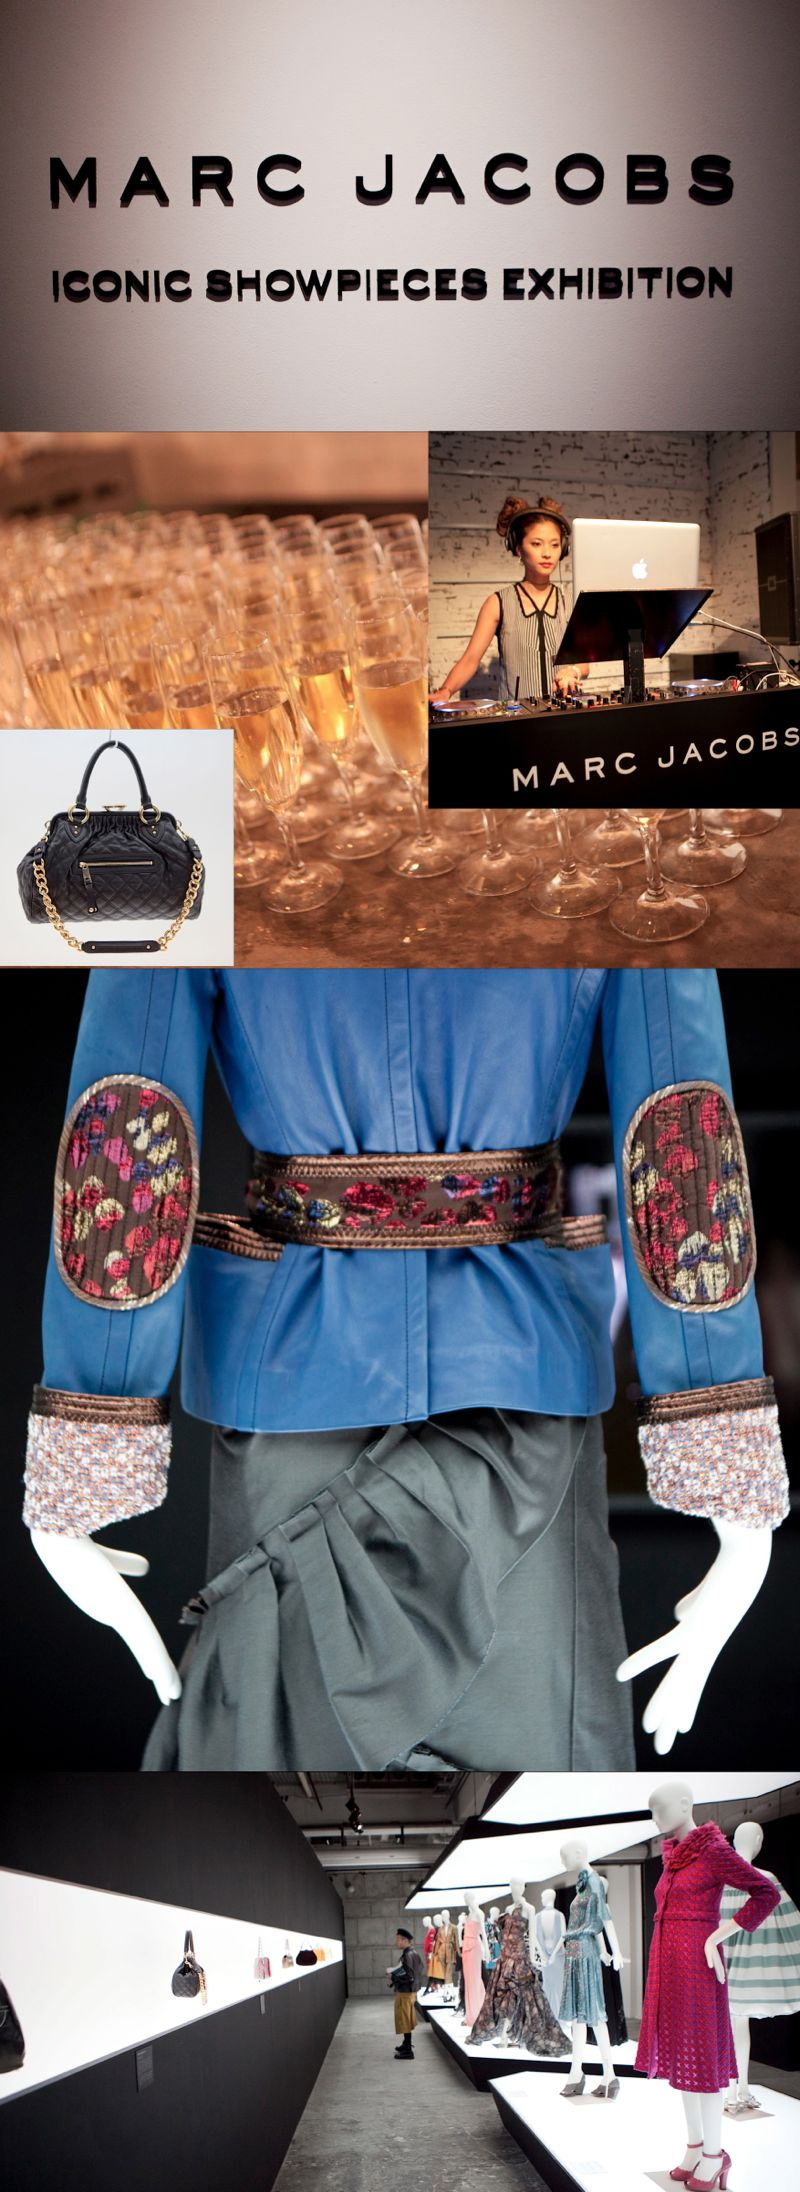 Marc Jacobs Iconic Showpieces Exhibition IDOL Aoyama Tokyo Dandy1